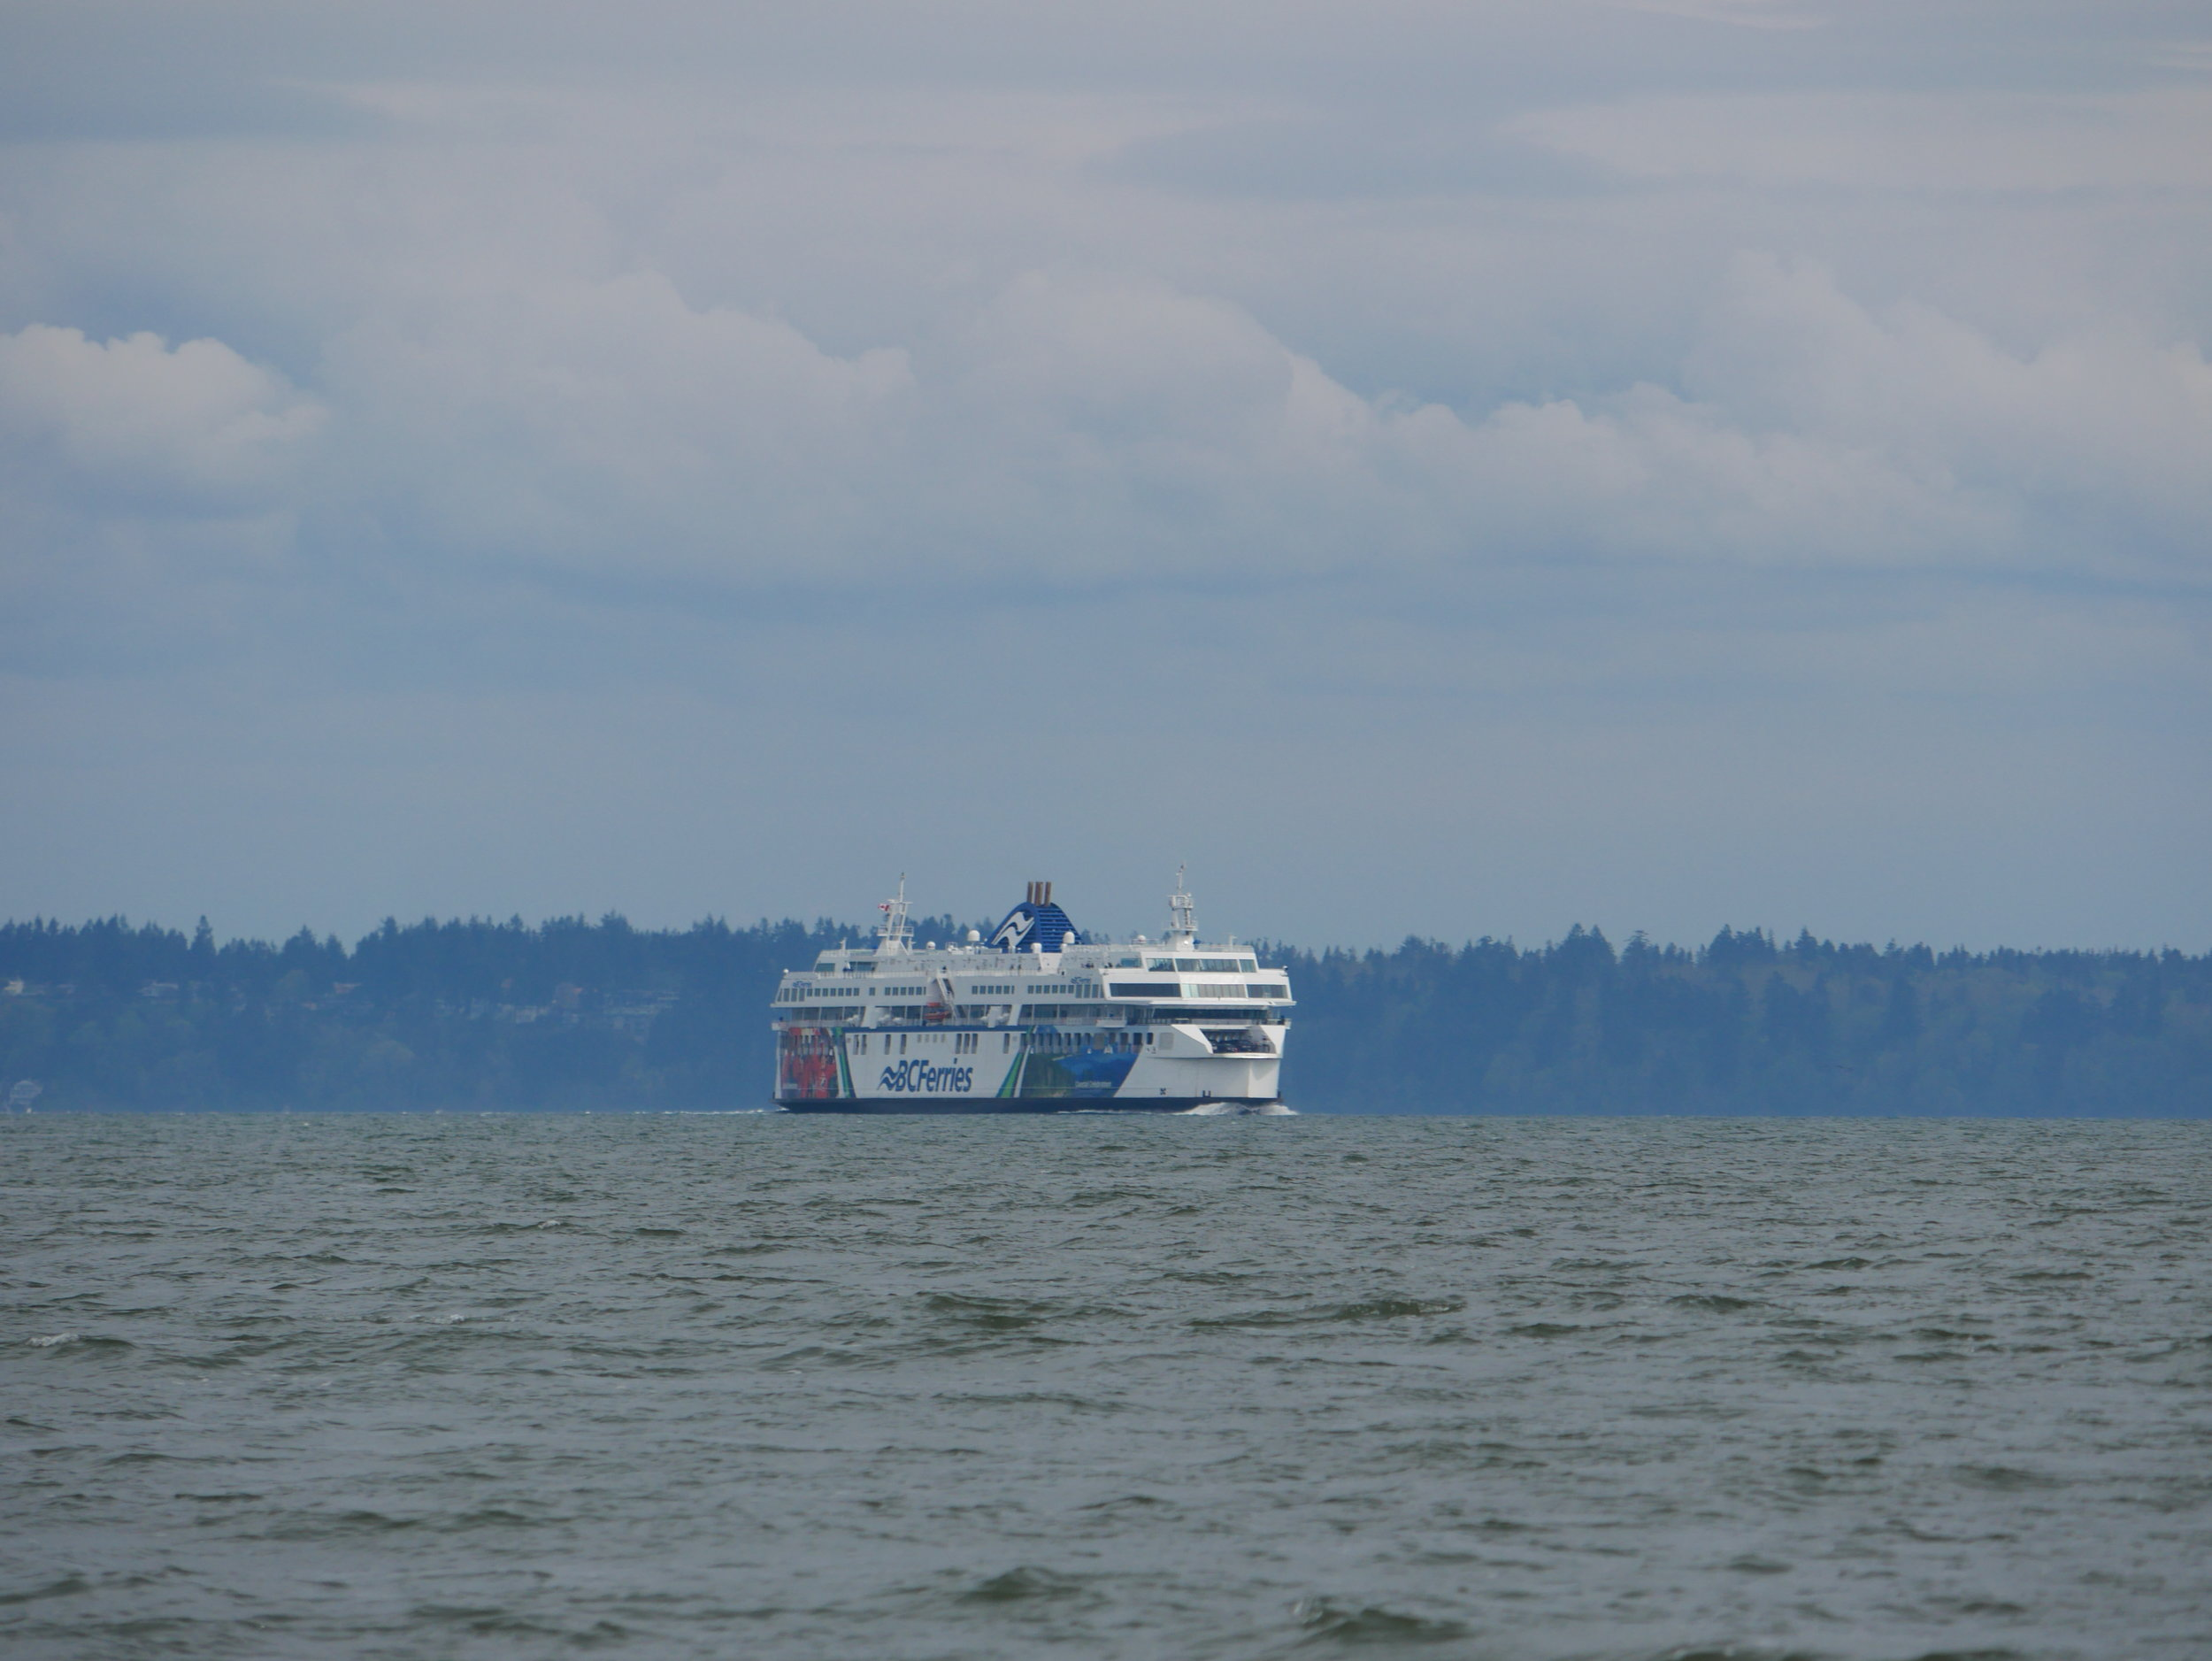 One of the BC Ferries crossing the Strait of Georgia. Photo by Jilann Campbell